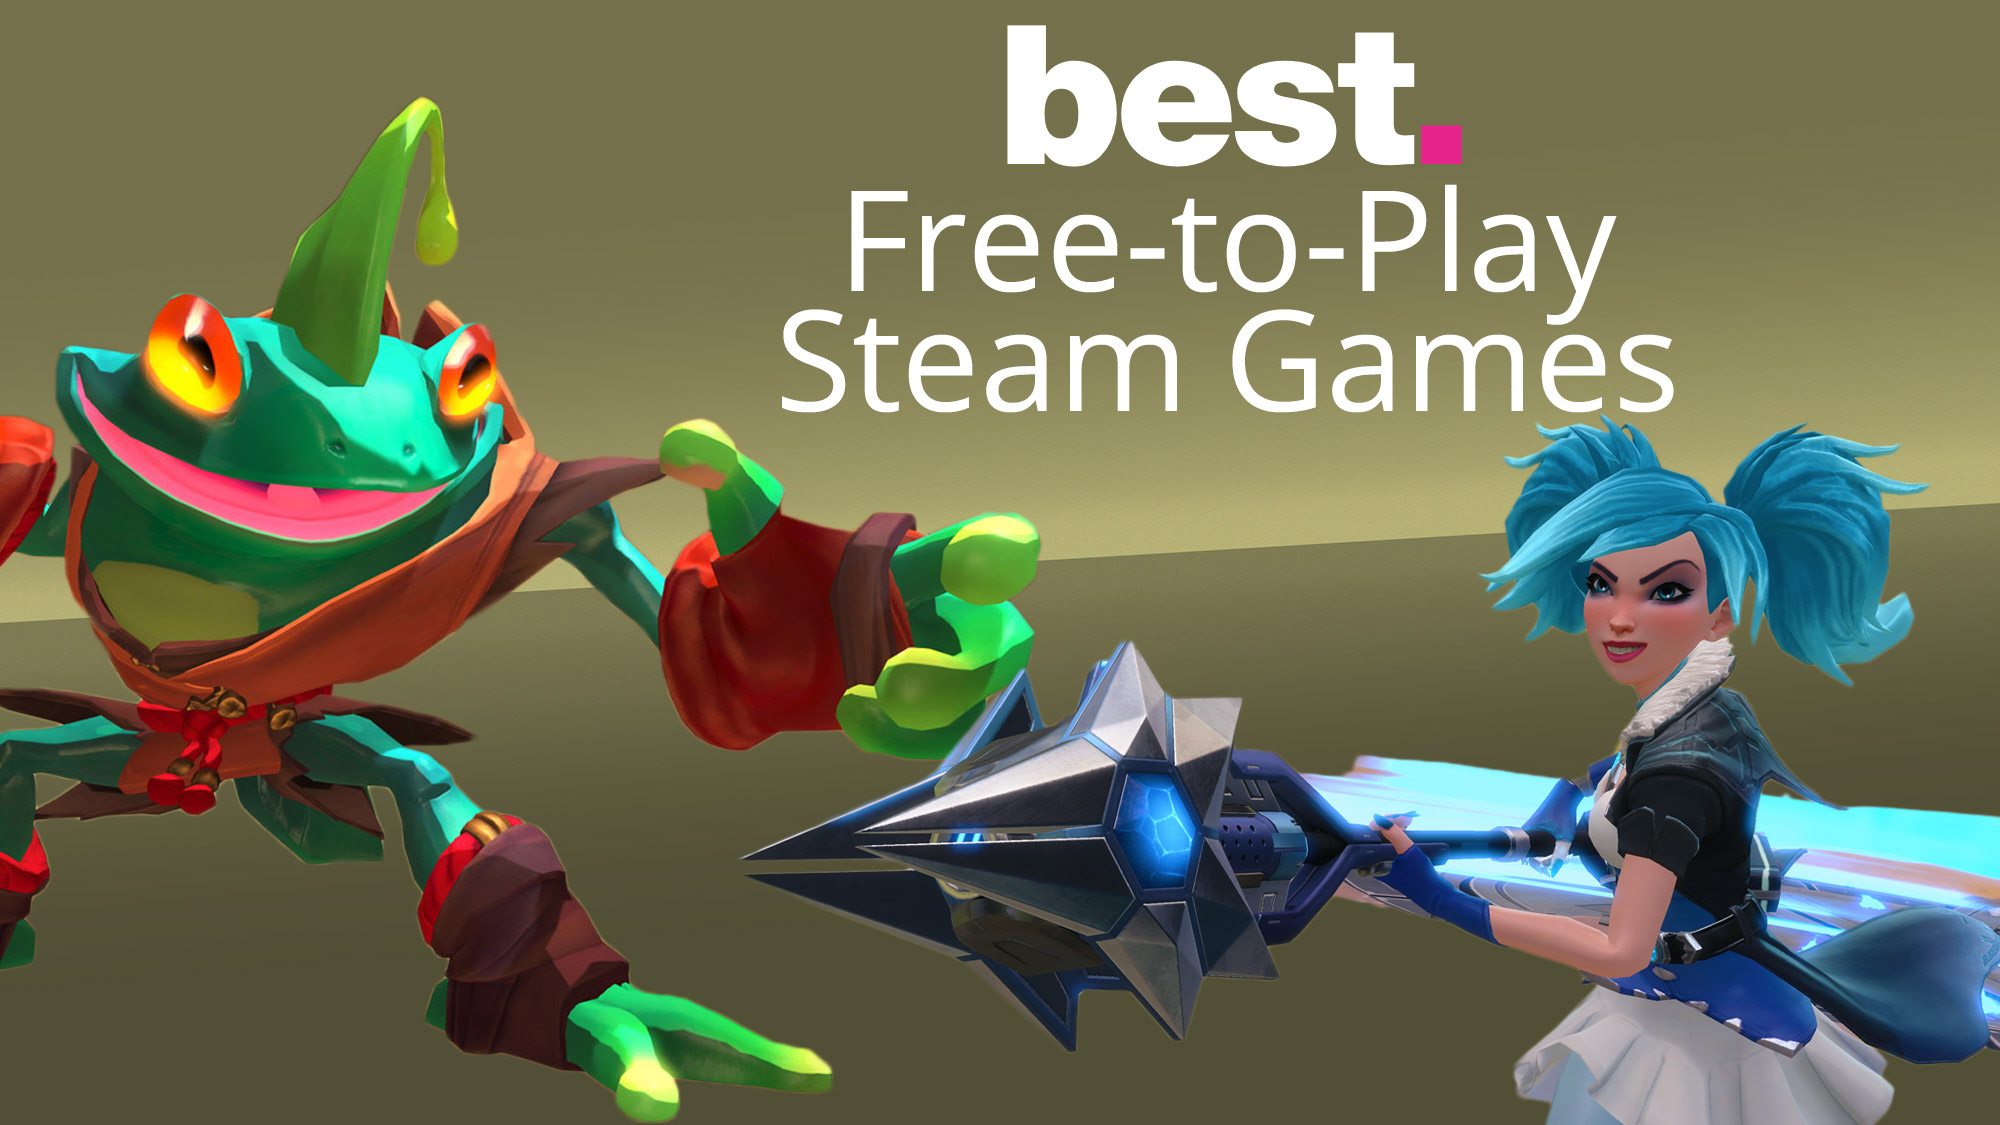 The best free – to – play Steam games 2020